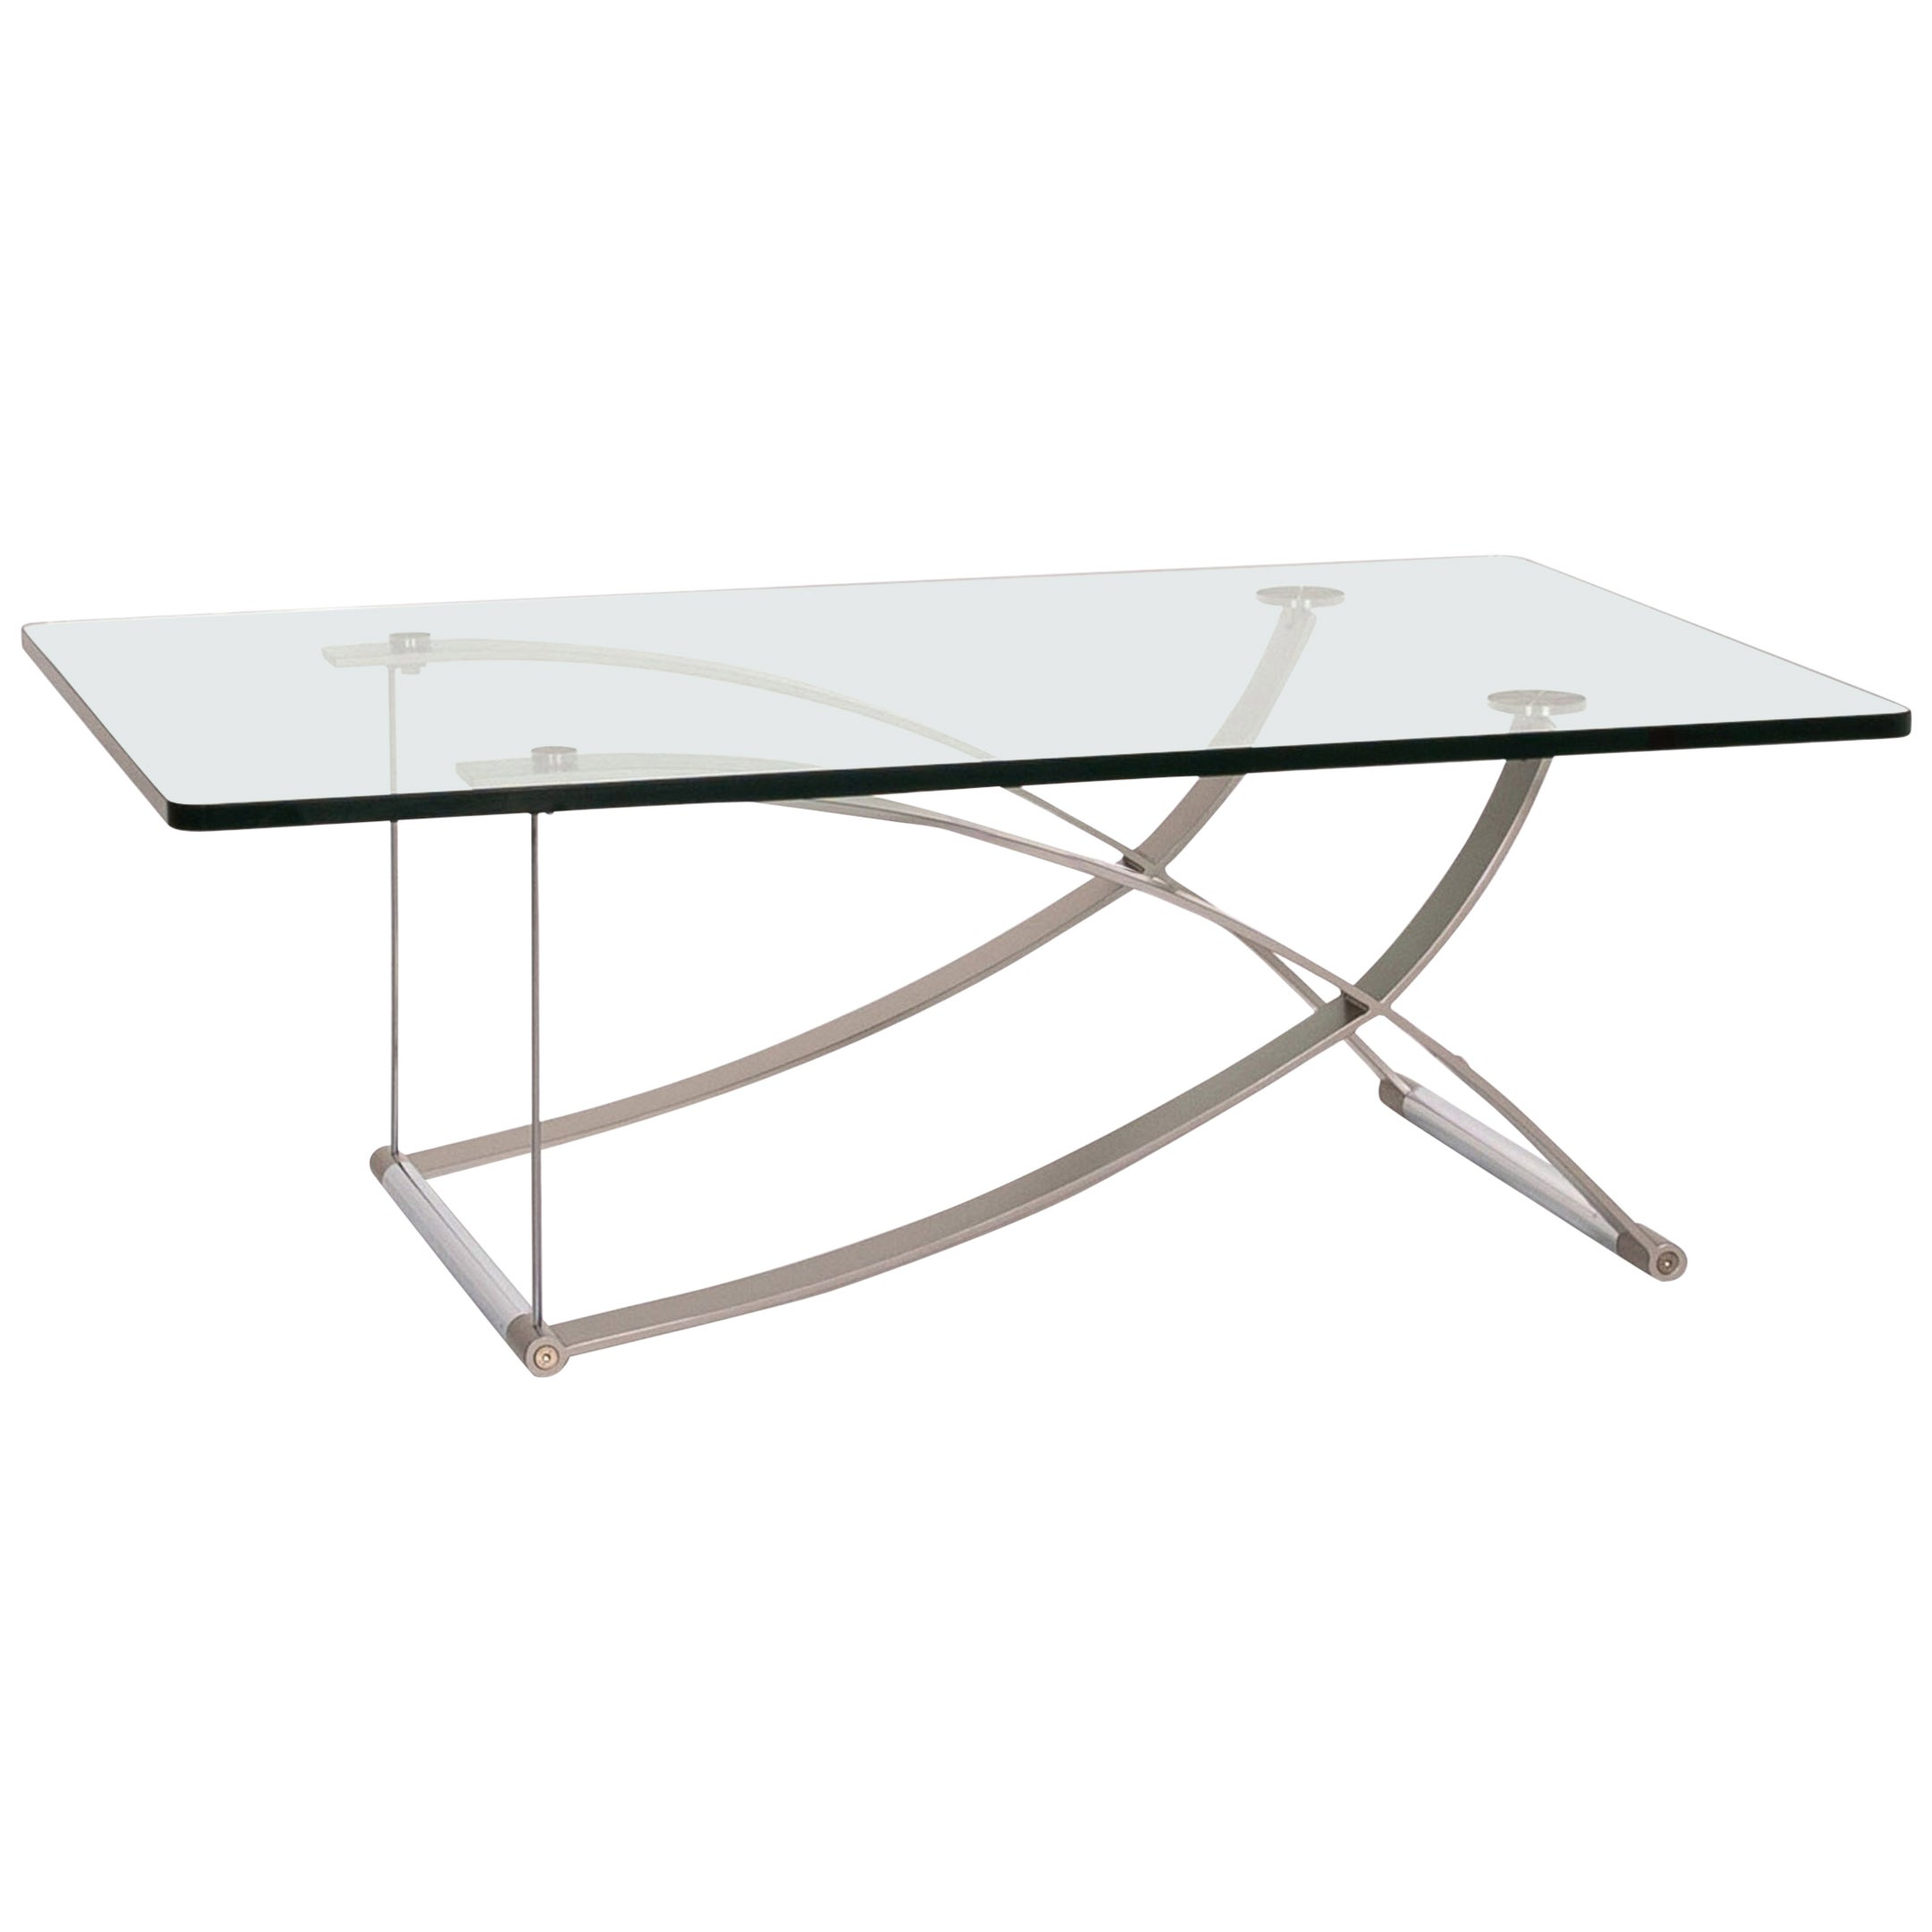 Rolf Benz RB 1150 Glass Coffee Table Metal Table